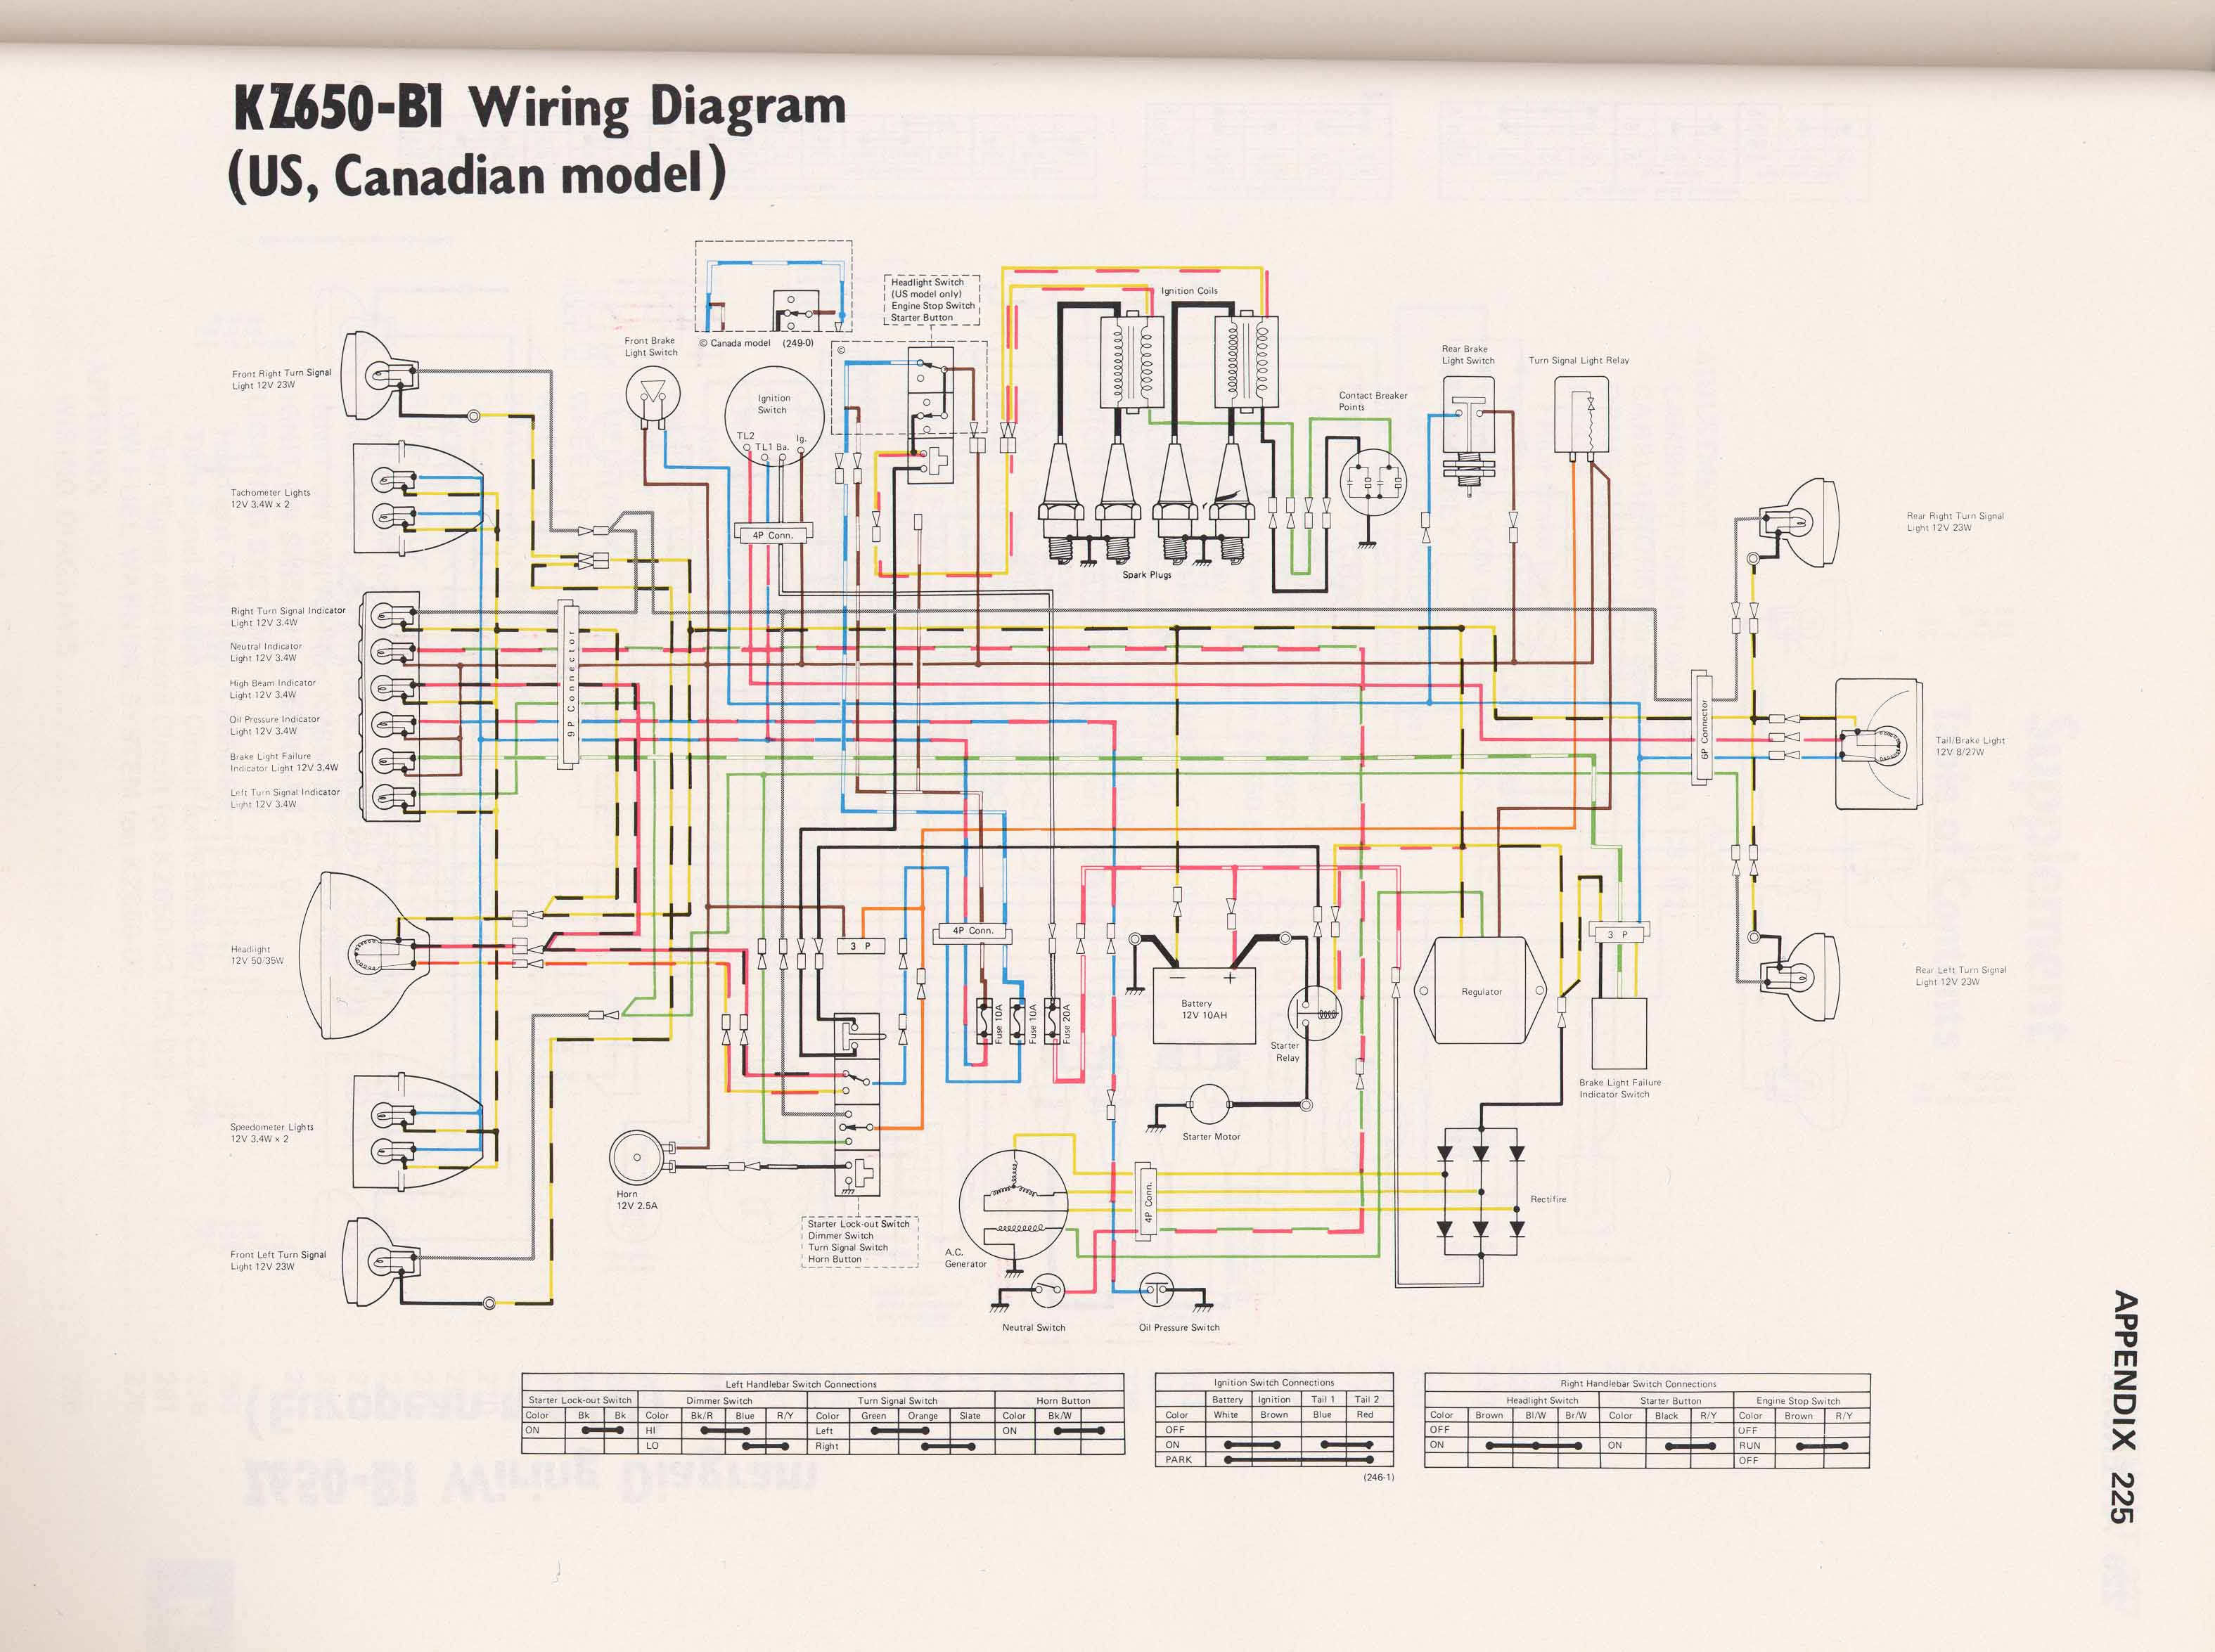 Kz650-b1 Wiring Diagram - Kzrider Forum